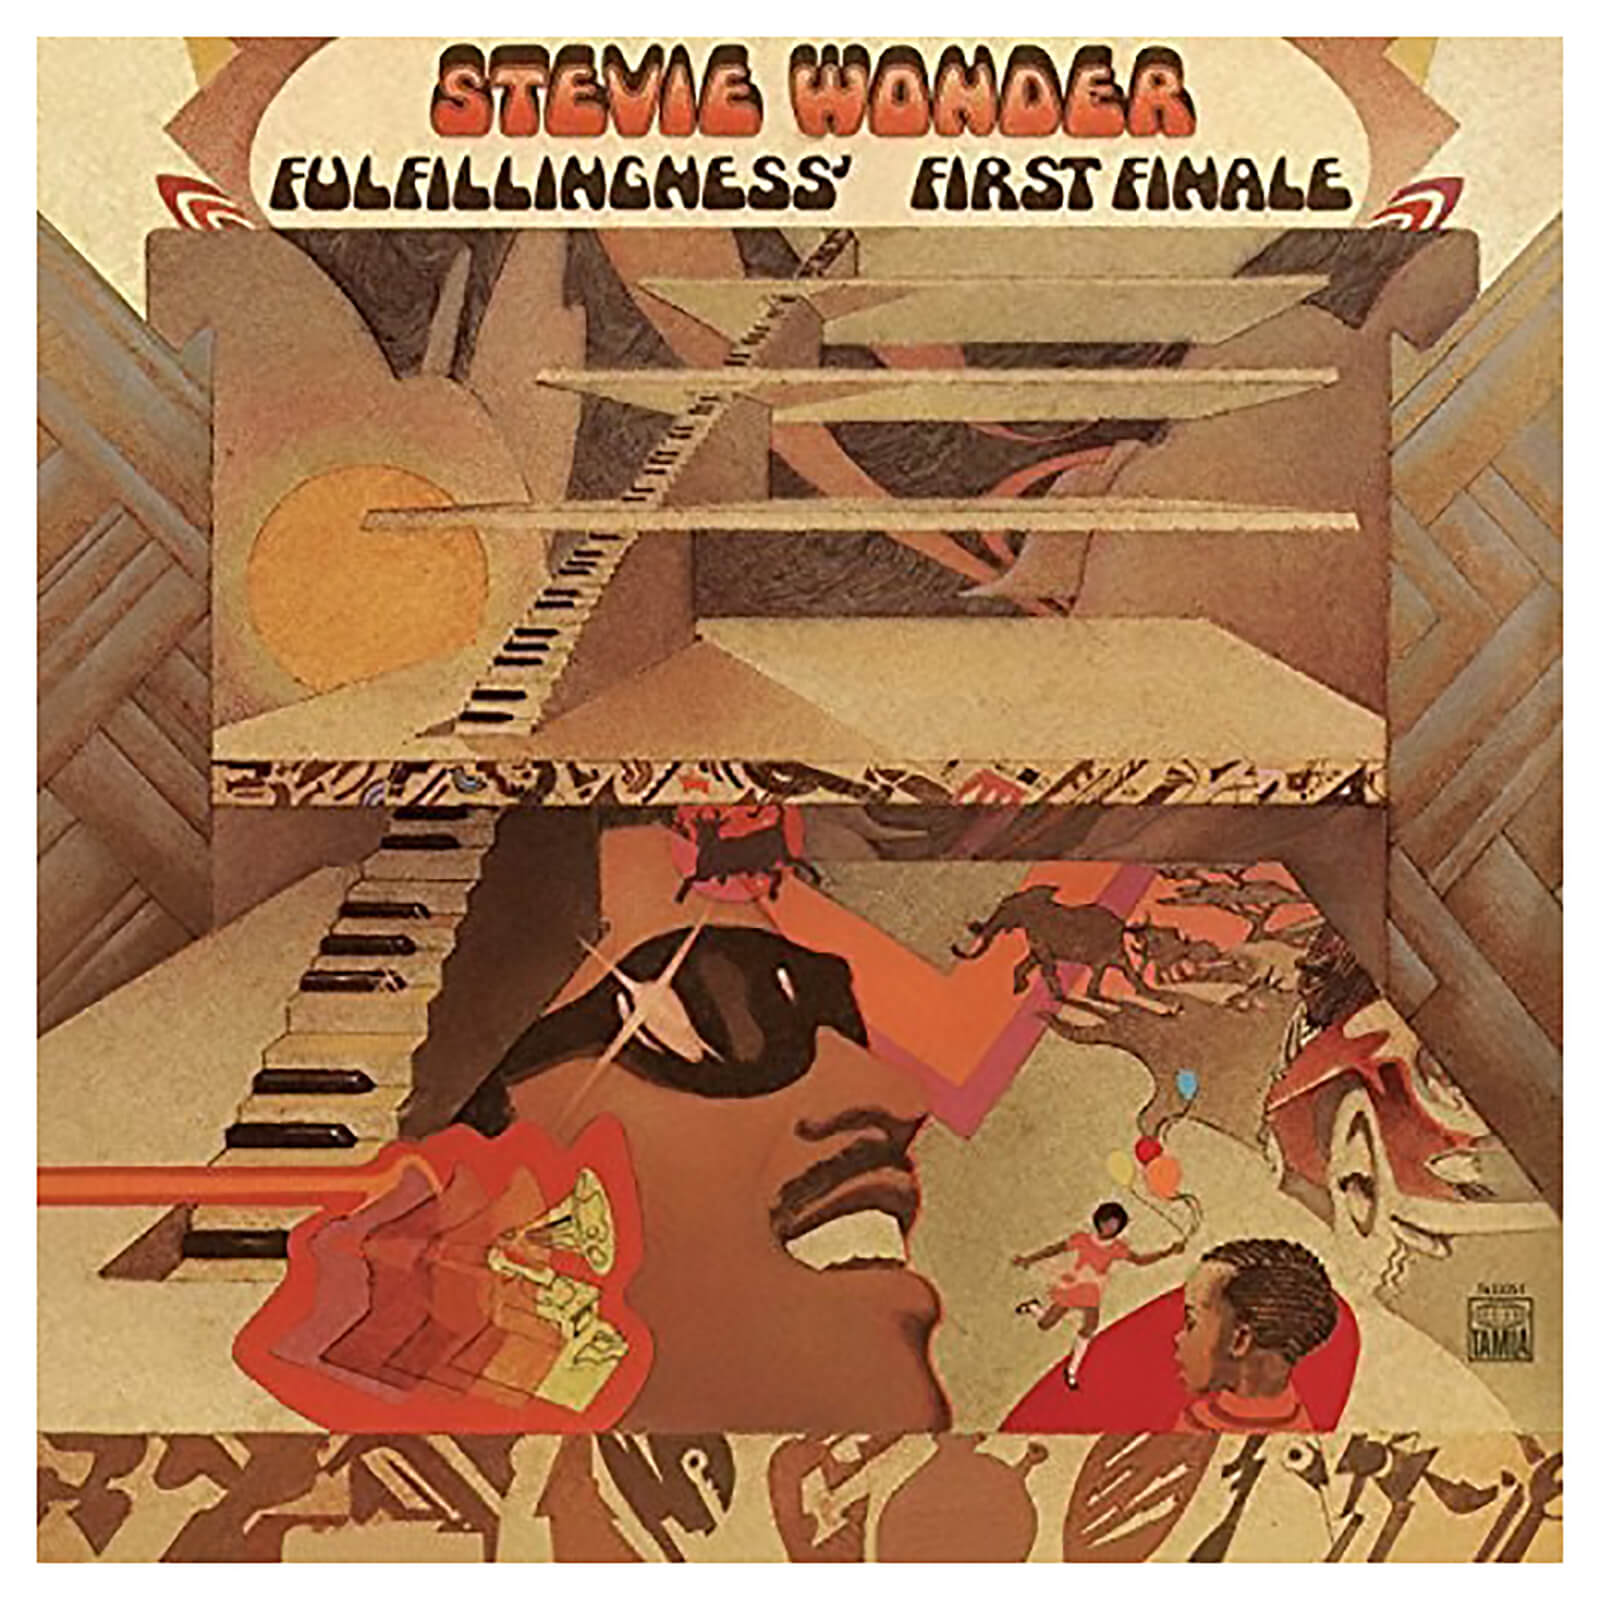 Stevie Wonder - Fulfillingness First Finale - Vinyl